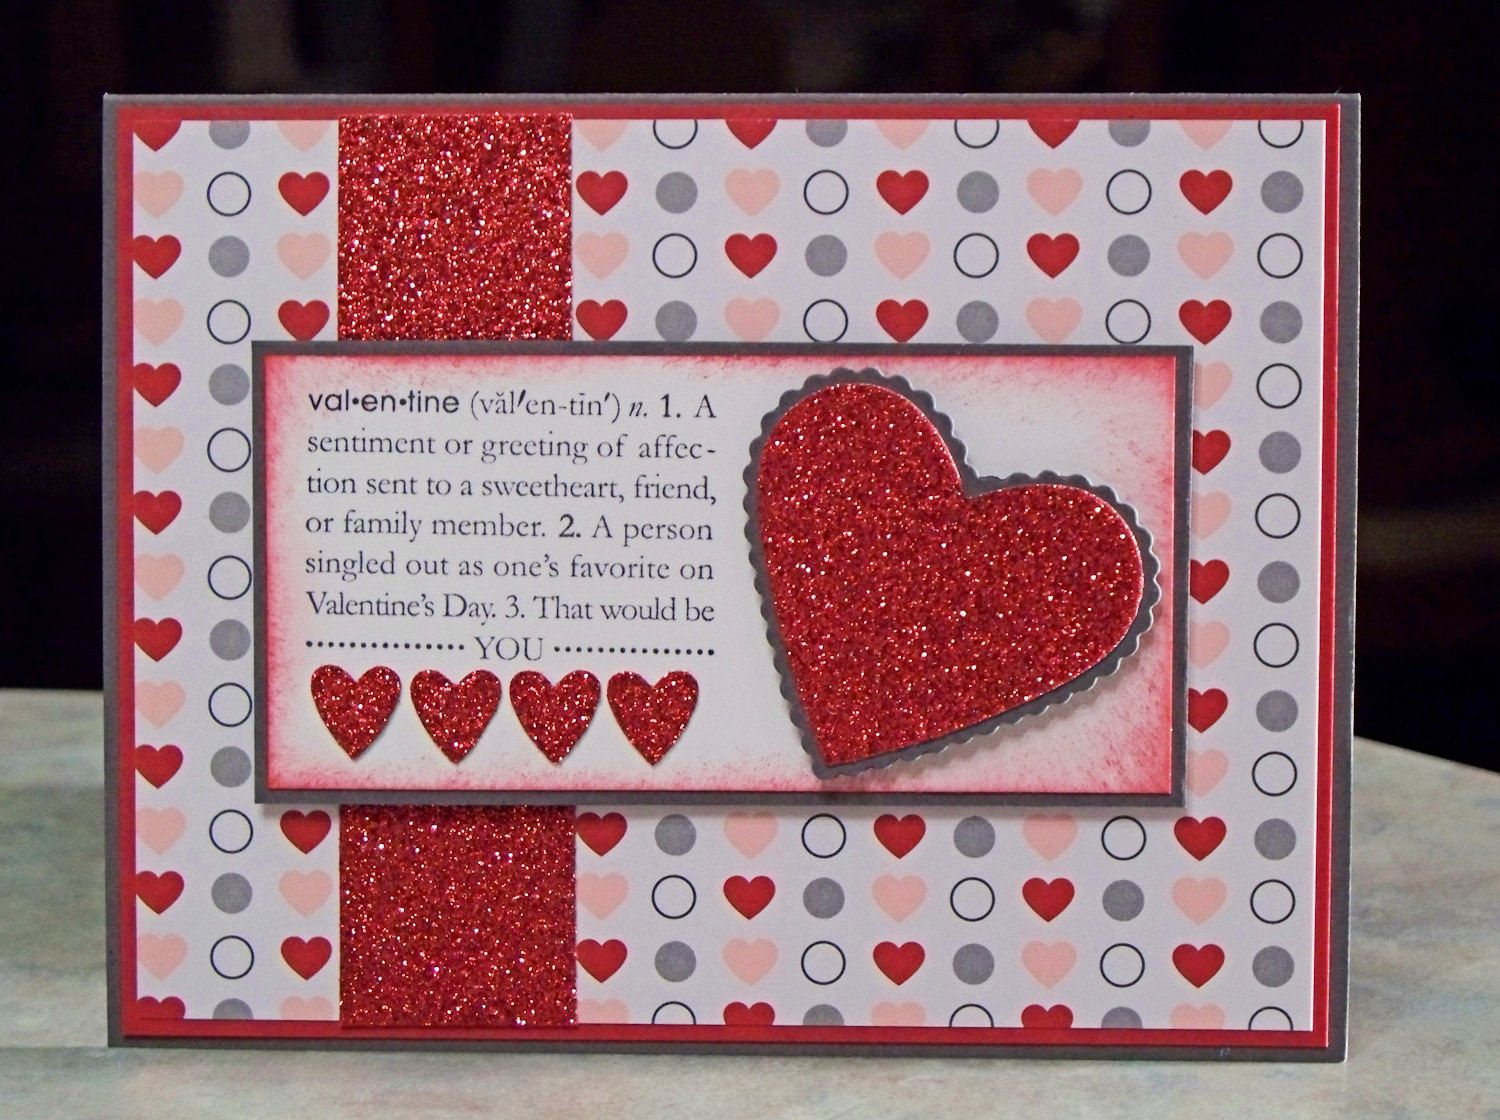 Handmade Valentines Day Card using Stampin Up Scallop Heart – How to Make an Awesome Valentines Day Card